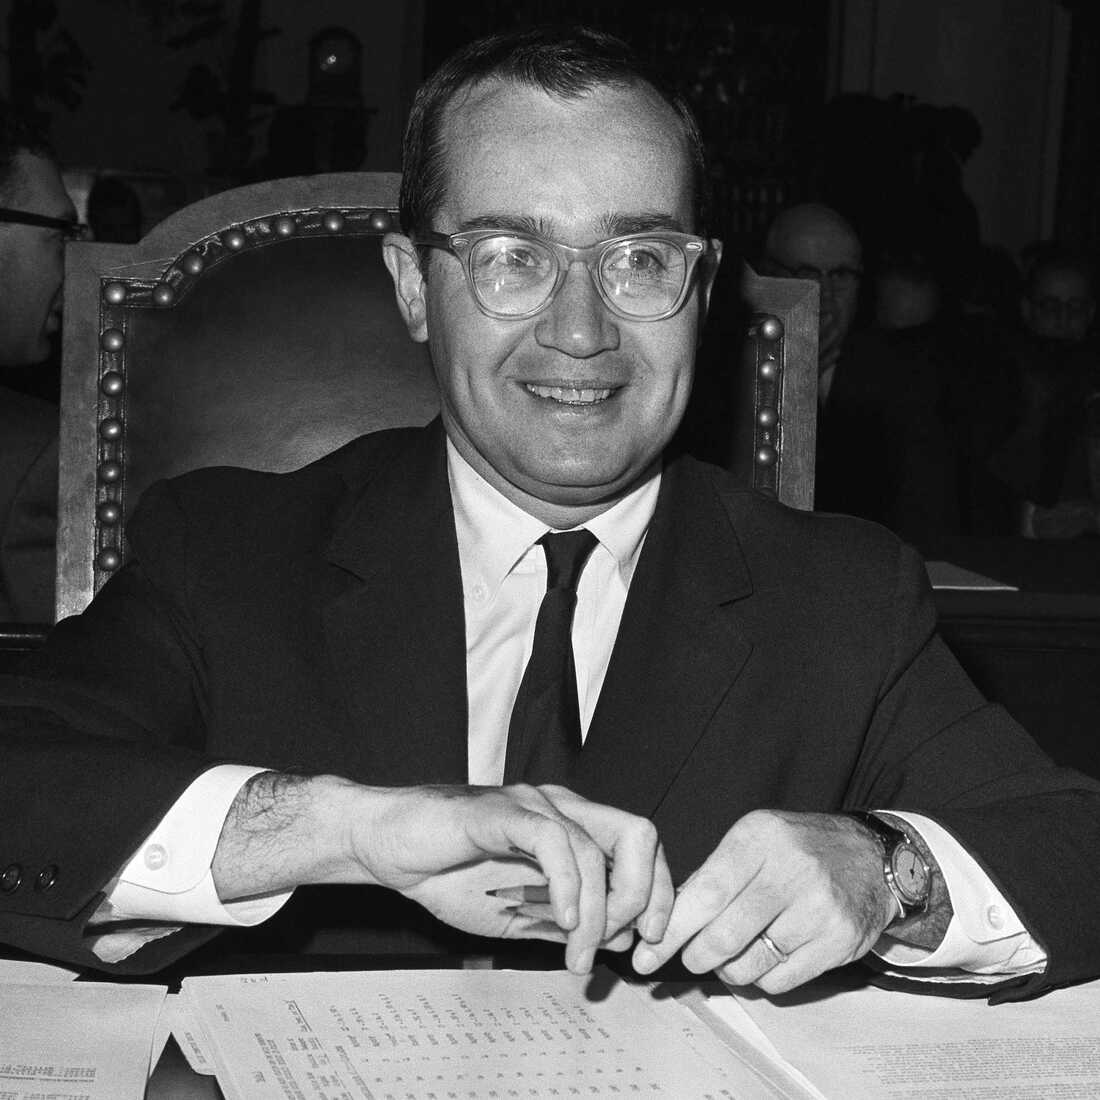 Newton Minow, chairman of the Federal Communications Commission, appears before the House Antitrust Subcommittee probing newspaper competition, March 13, 1963.